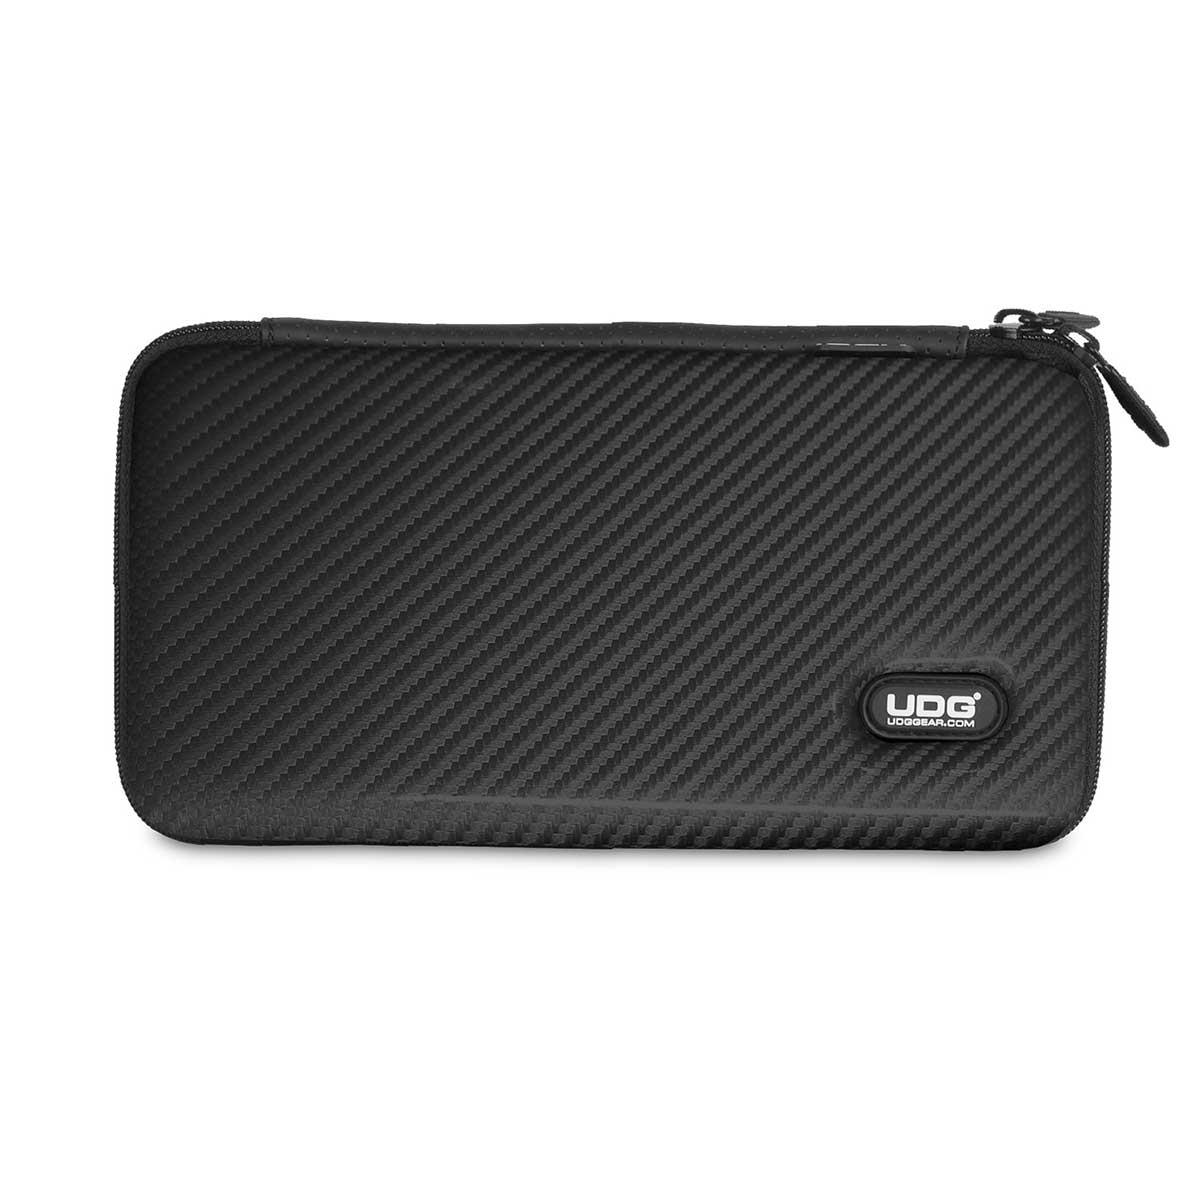 UDG Creator Cartridge Hardcase Black PU